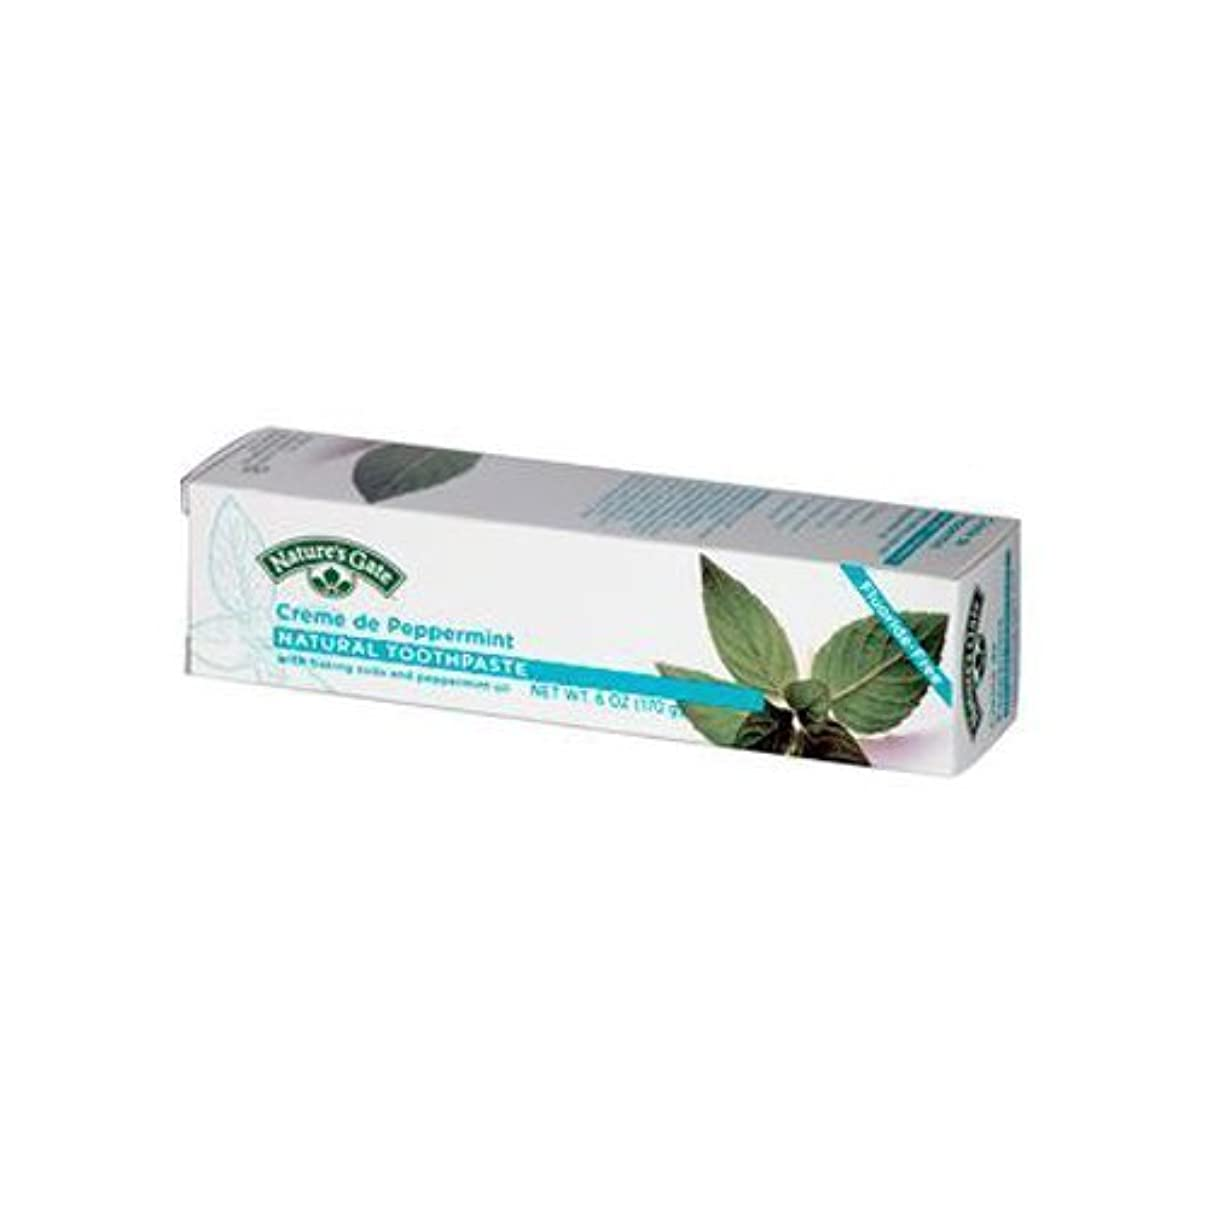 アクセスできない静脈あなたはNatures Gate Natural Toothpaste Cr�me De Peppermint - 6 oz - Case of 6 by NATURE'S GATE [並行輸入品]